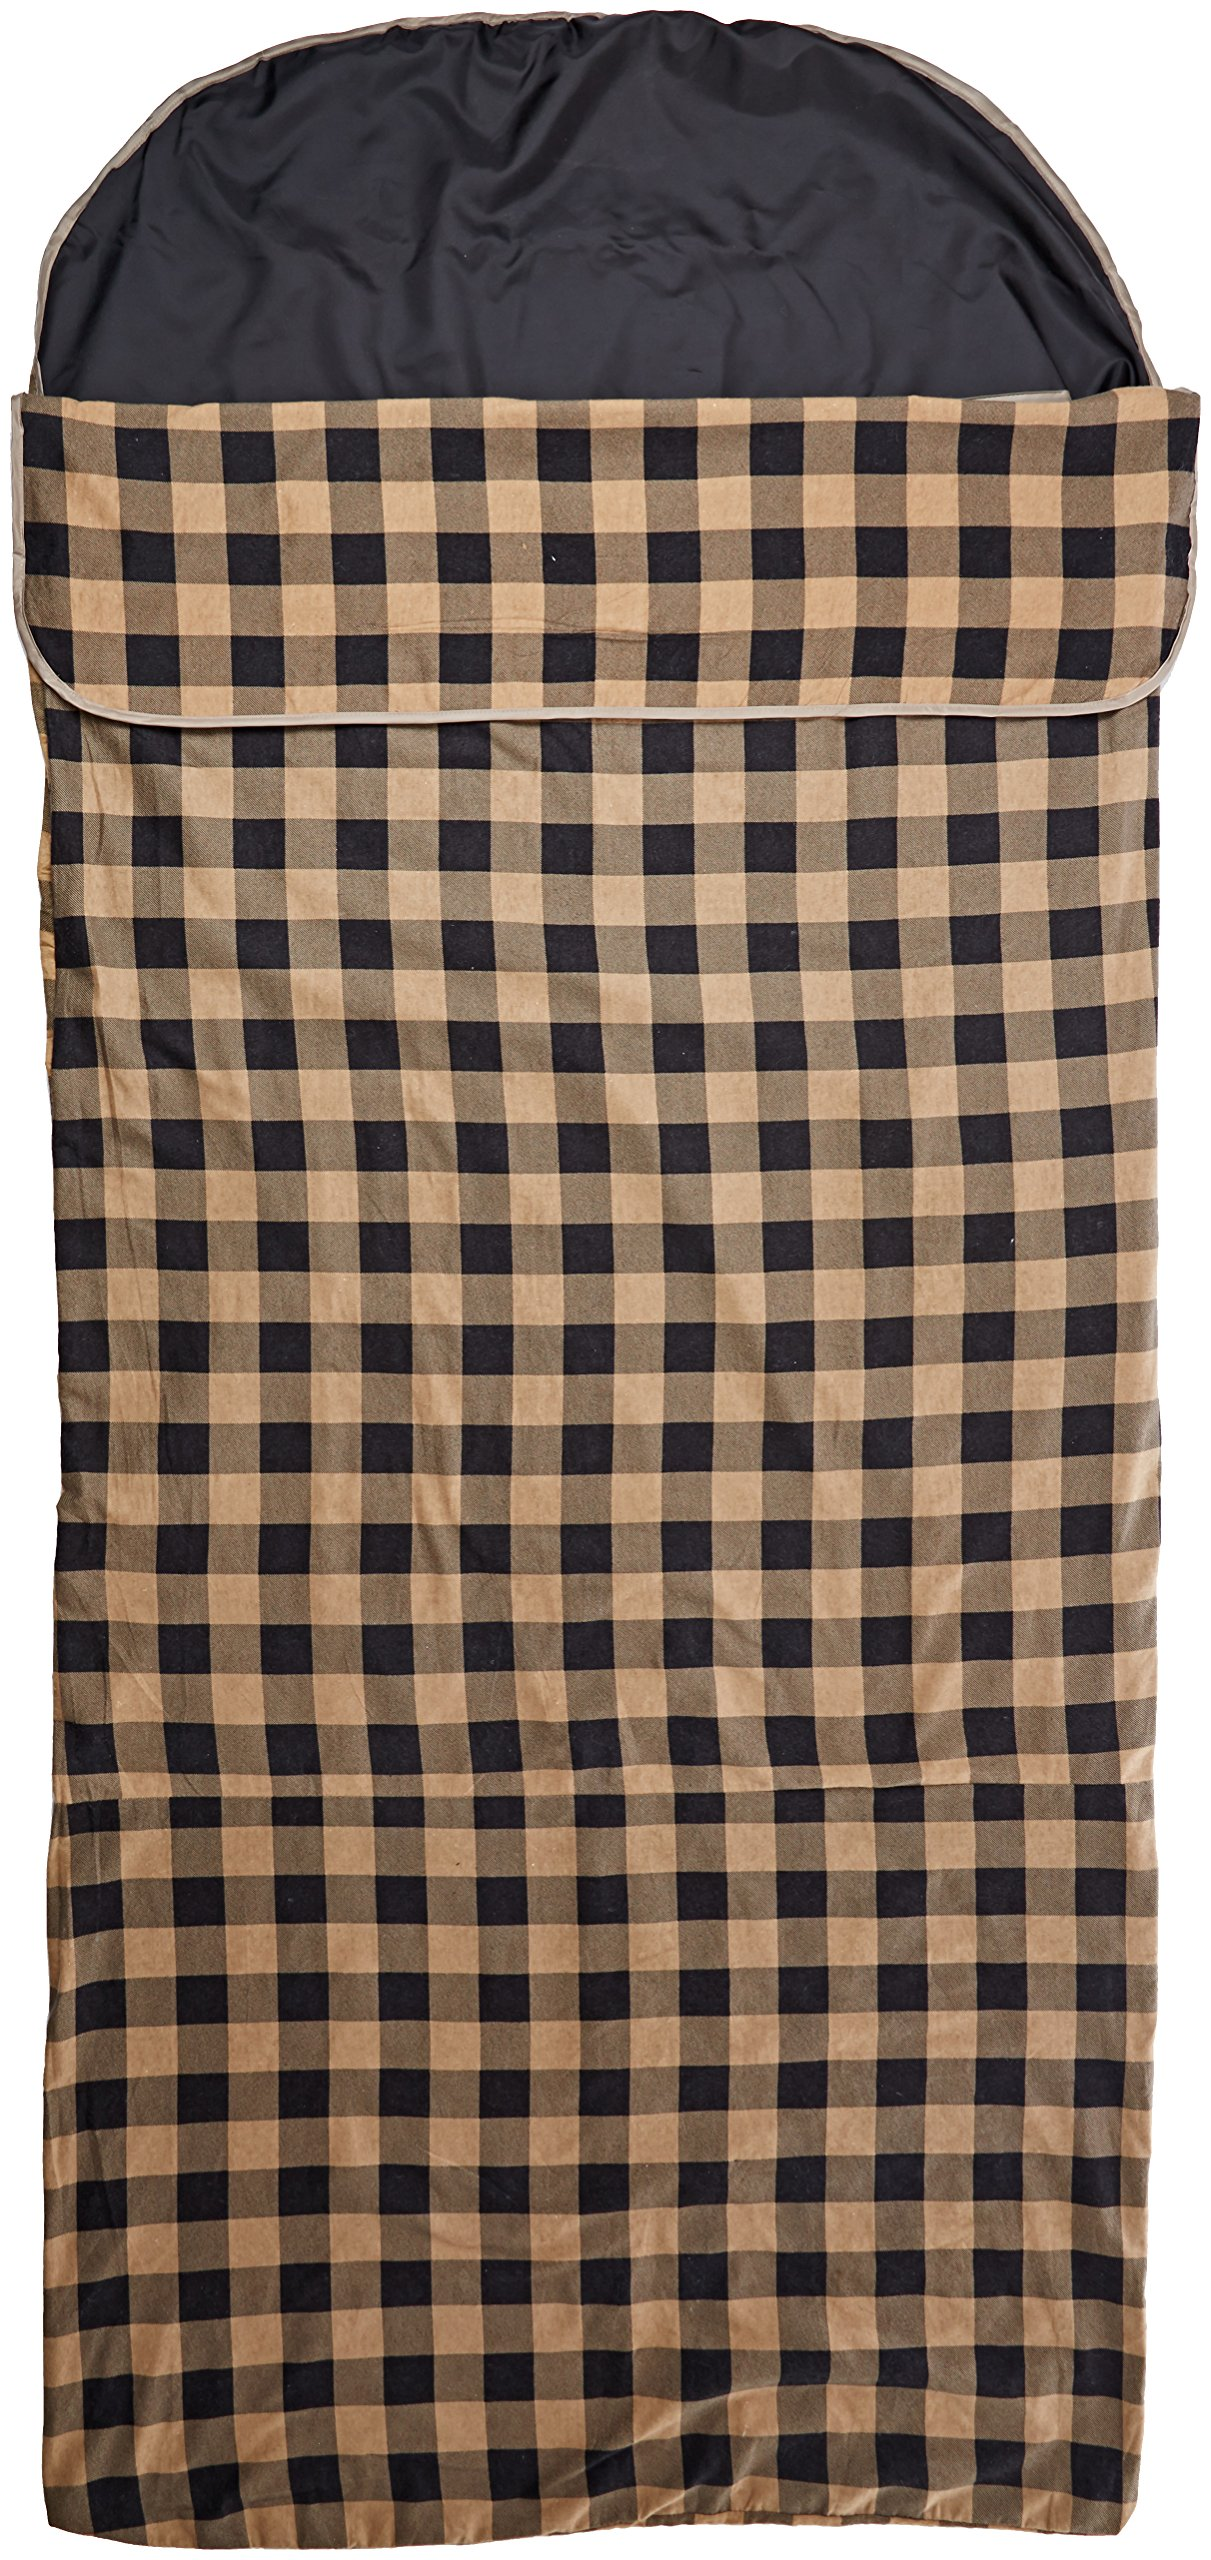 Ledge Sports Flannel Sleeping Bag Liner (90X40, Brown)